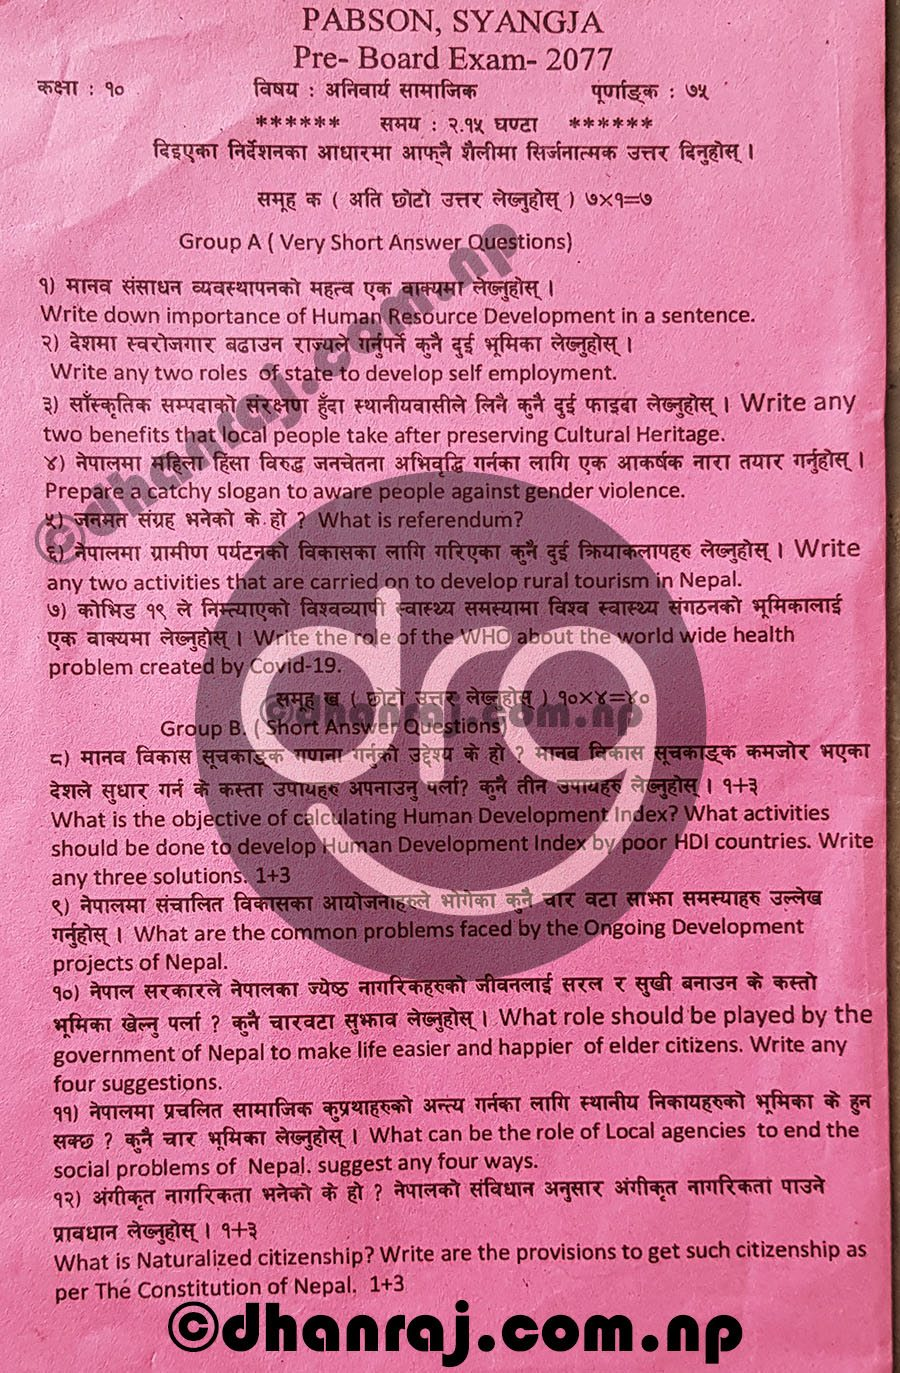 Social-Studies-Class-10-SEE-Pre-Board-Exam-Question-Paper-2077-PABSON